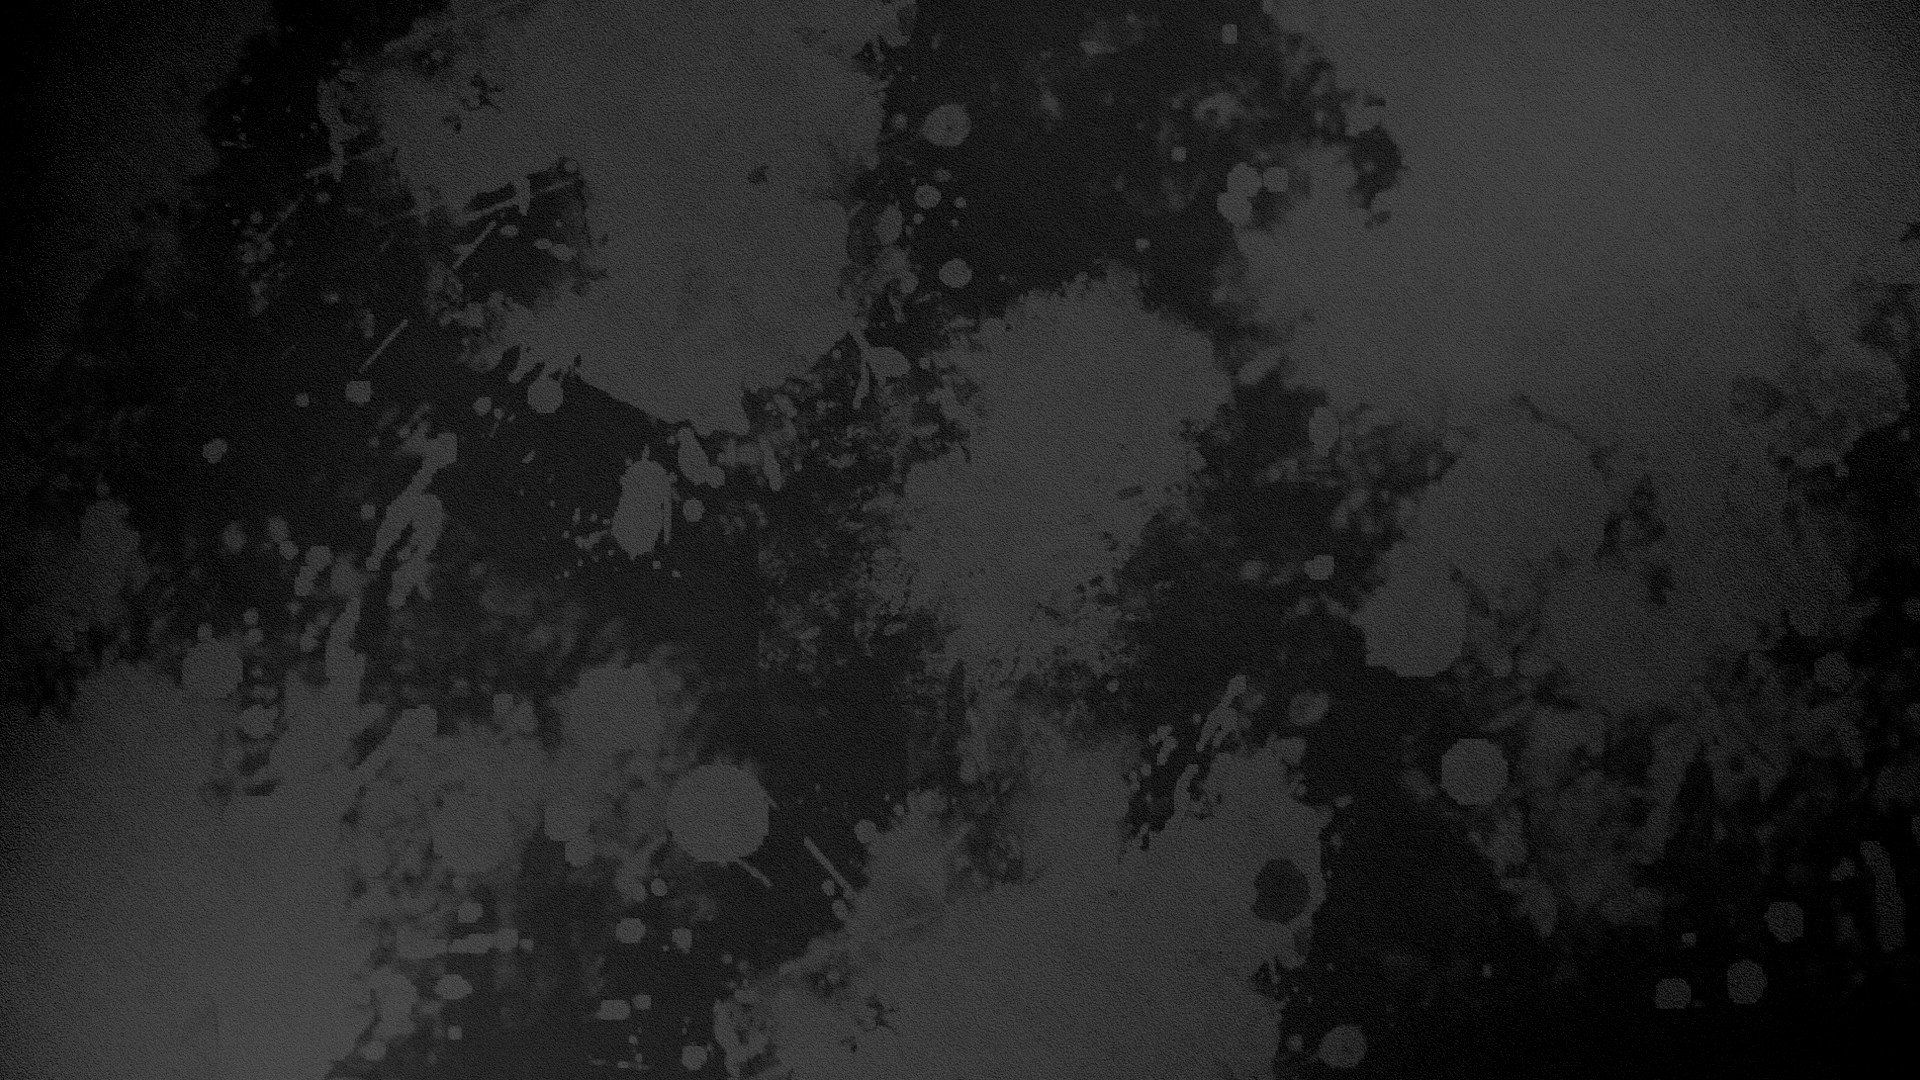 desktop backgrounds tumblr grunge Google Search Desktop